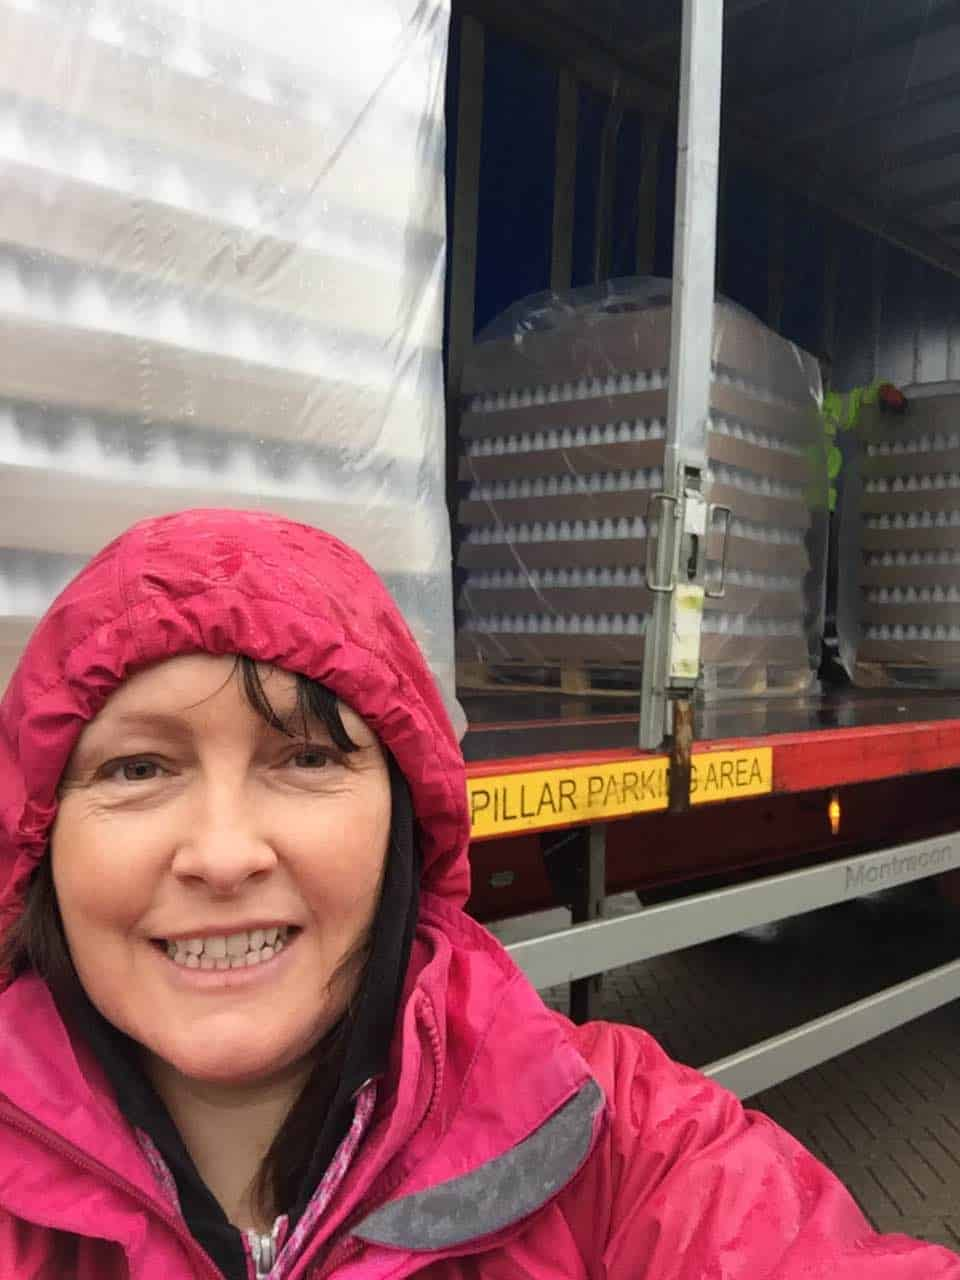 Bottles delivery selfie 31.5.16